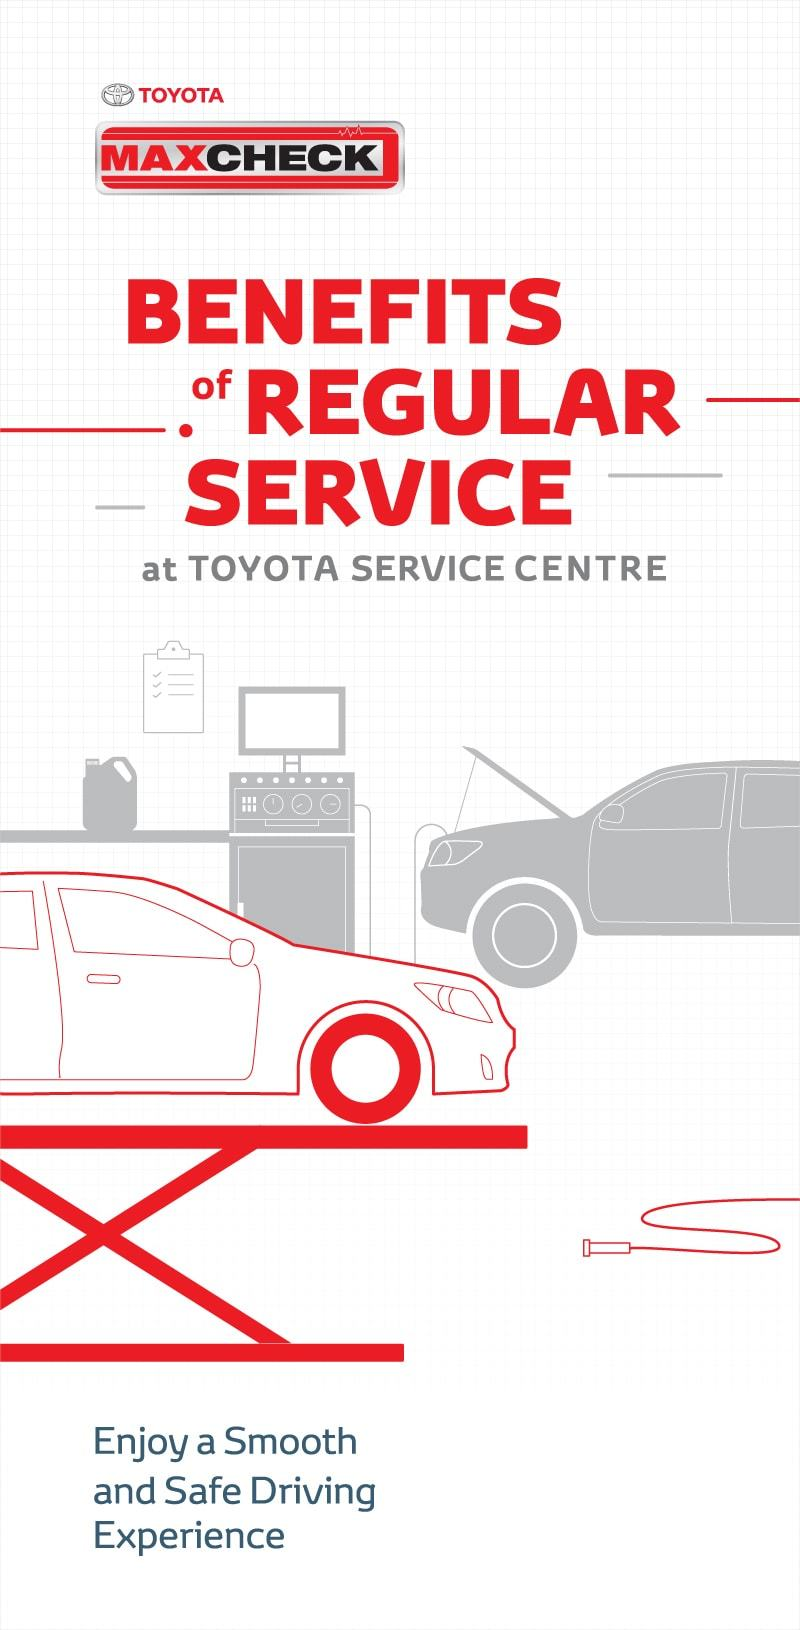 Get personalised care and professional service for your Toyota vehicle,  catering to all your needs throughout the entire vehicle ownership journey.